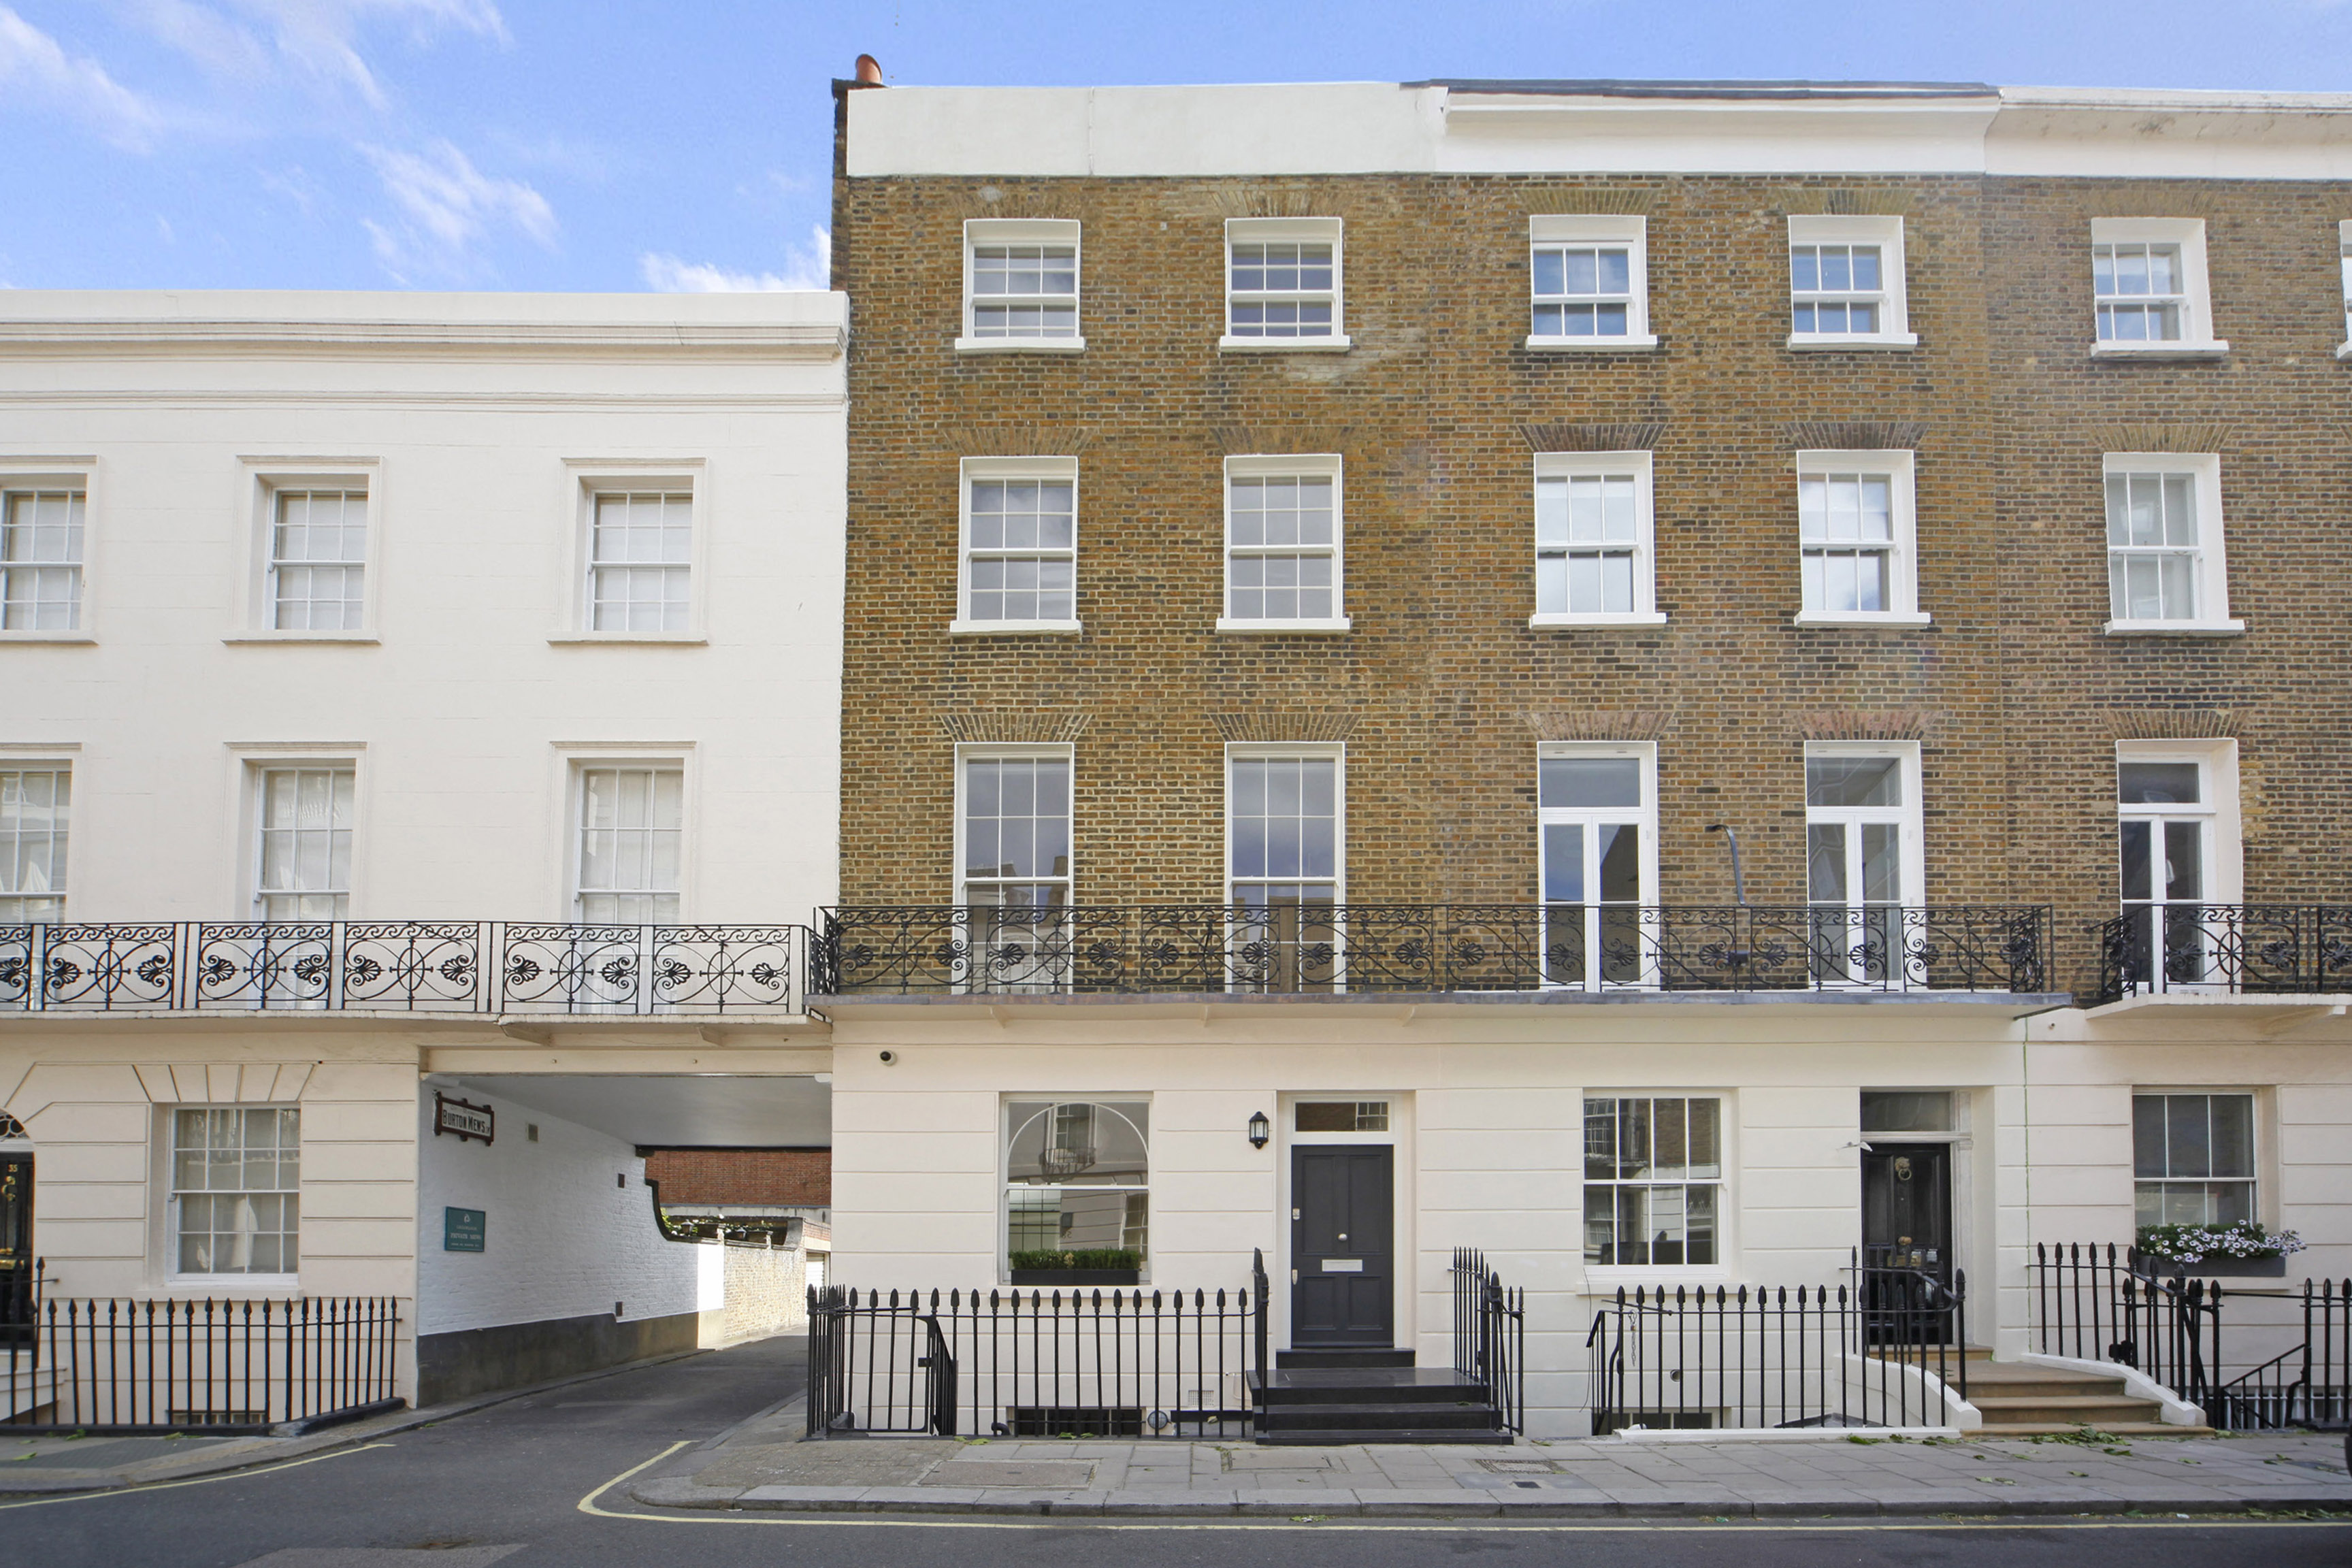 独户住宅 为 销售 在 South Eaton Place South Eaton Place Belgravia London, 英格兰 SW1W9EL 英国